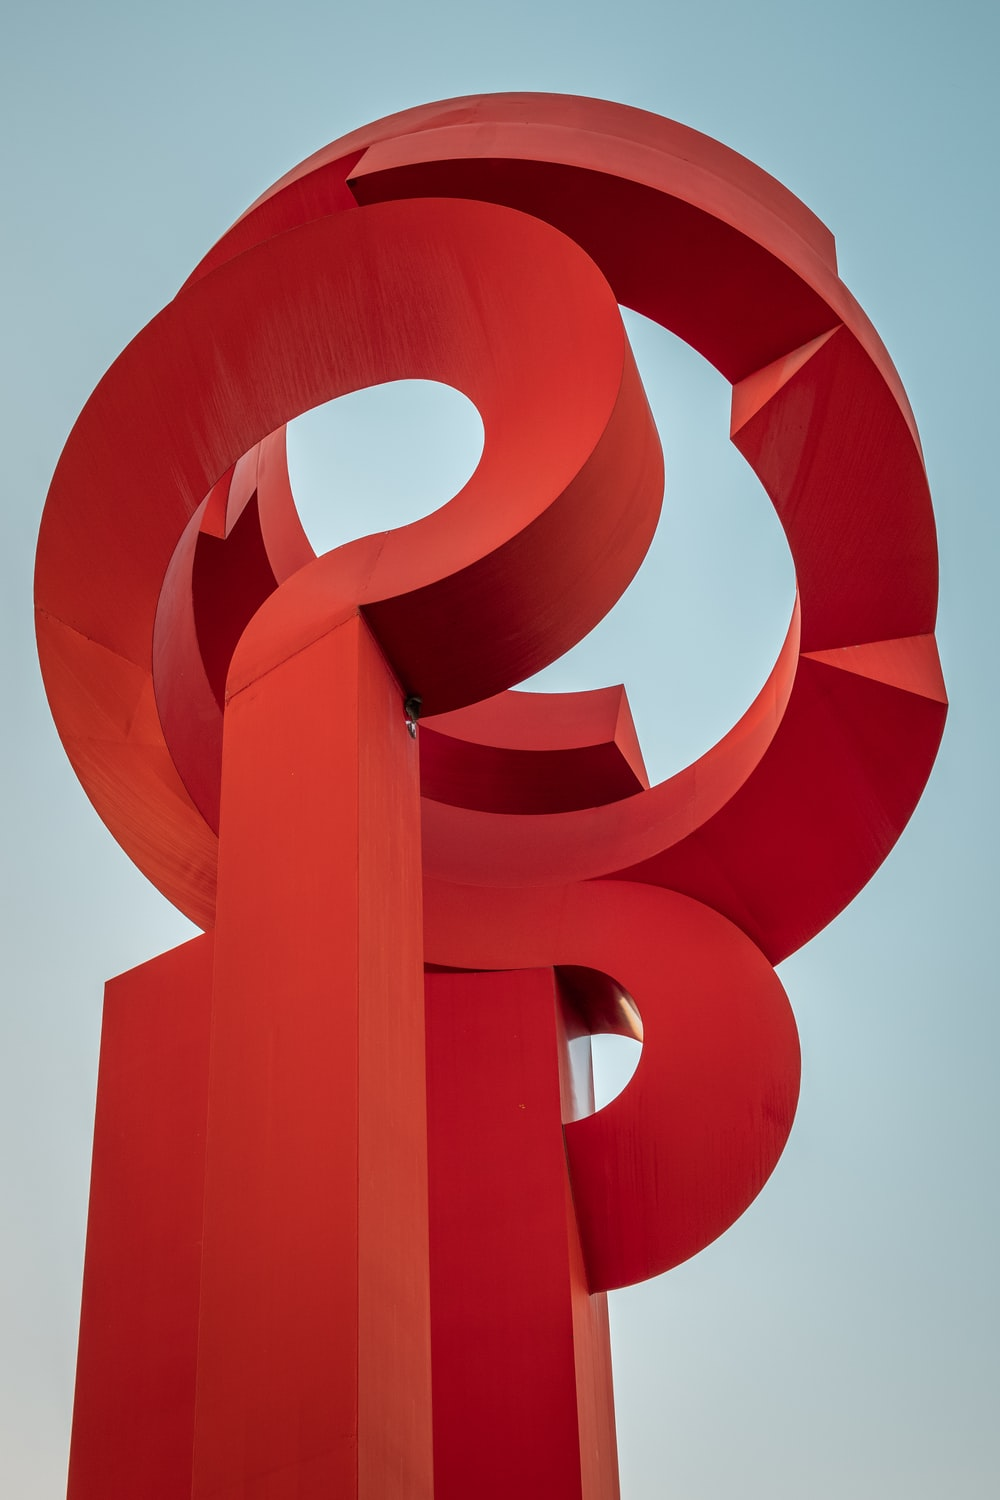 red and white spiral illustration